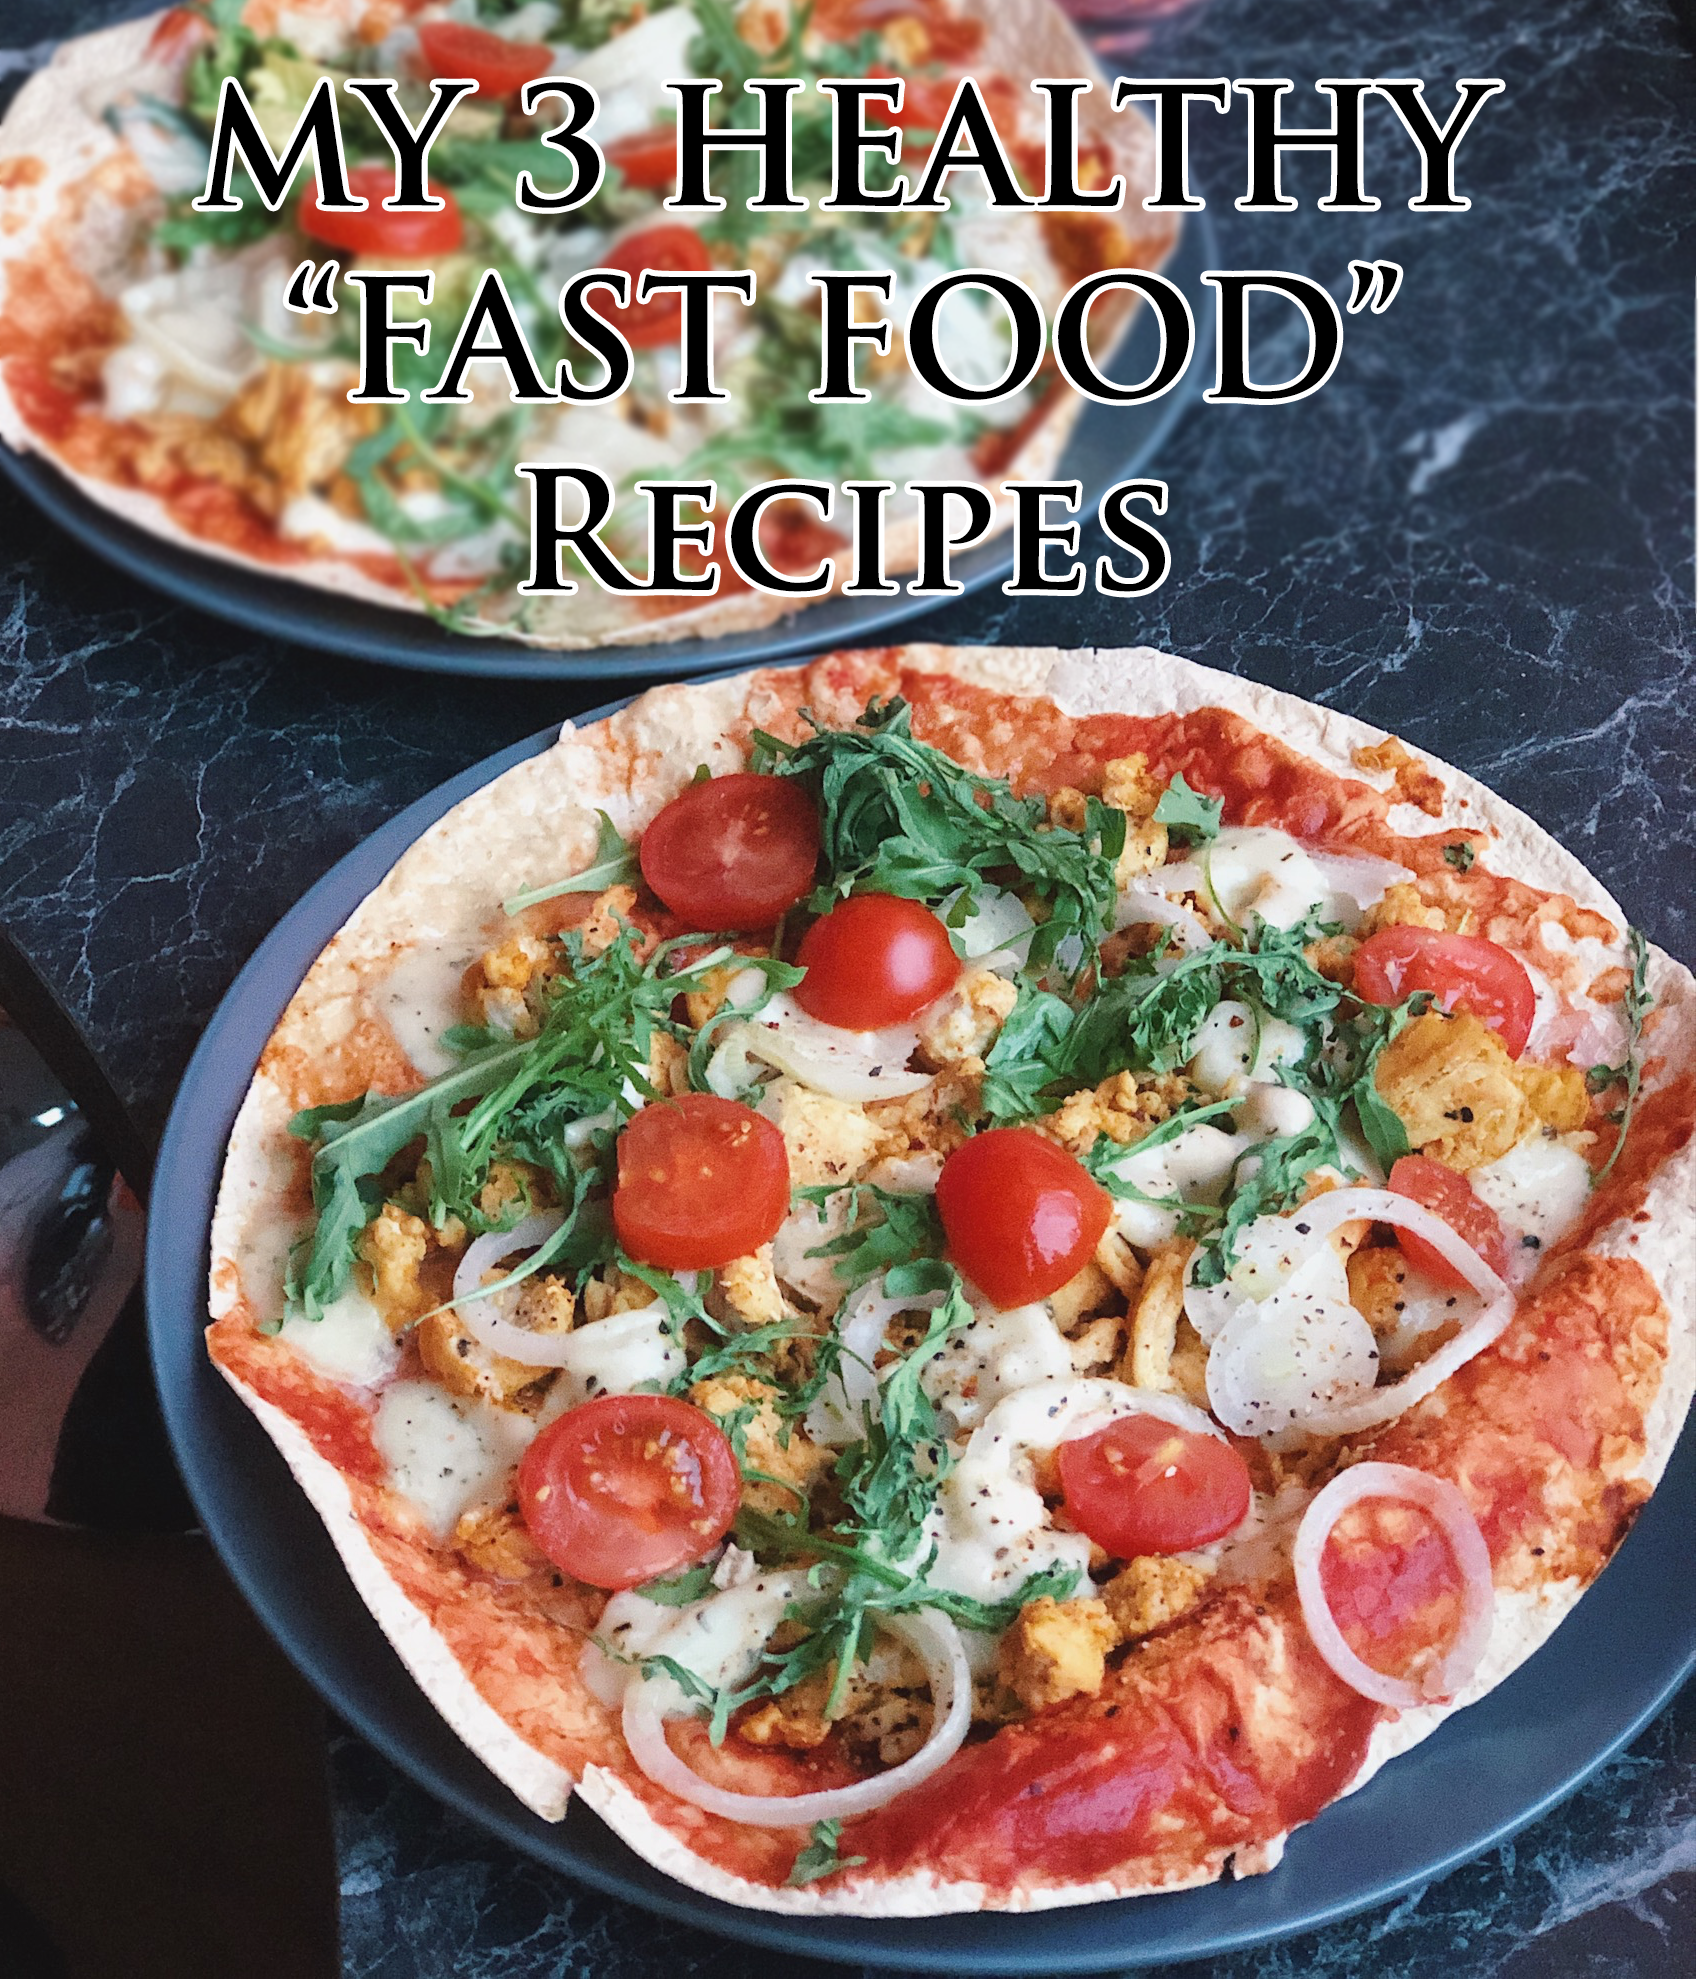 Melissa Healthy fast Food Recipes